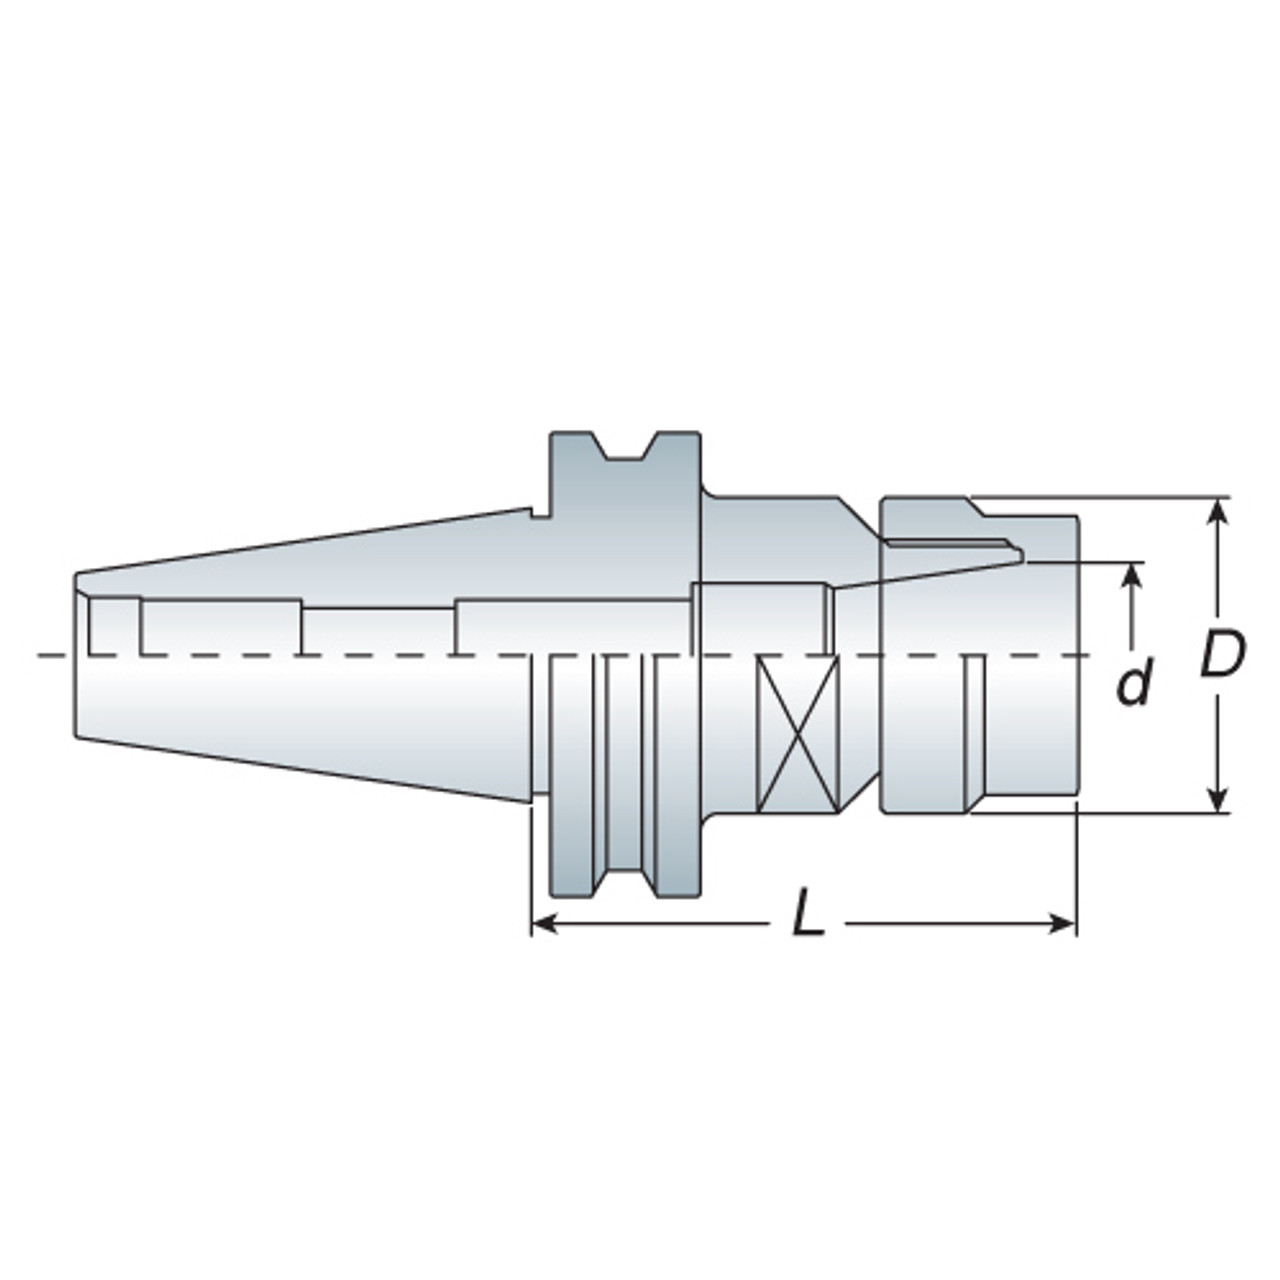 hight resolution of metaltech tools tool holder spring collet chuck er25 iso30 60 mm